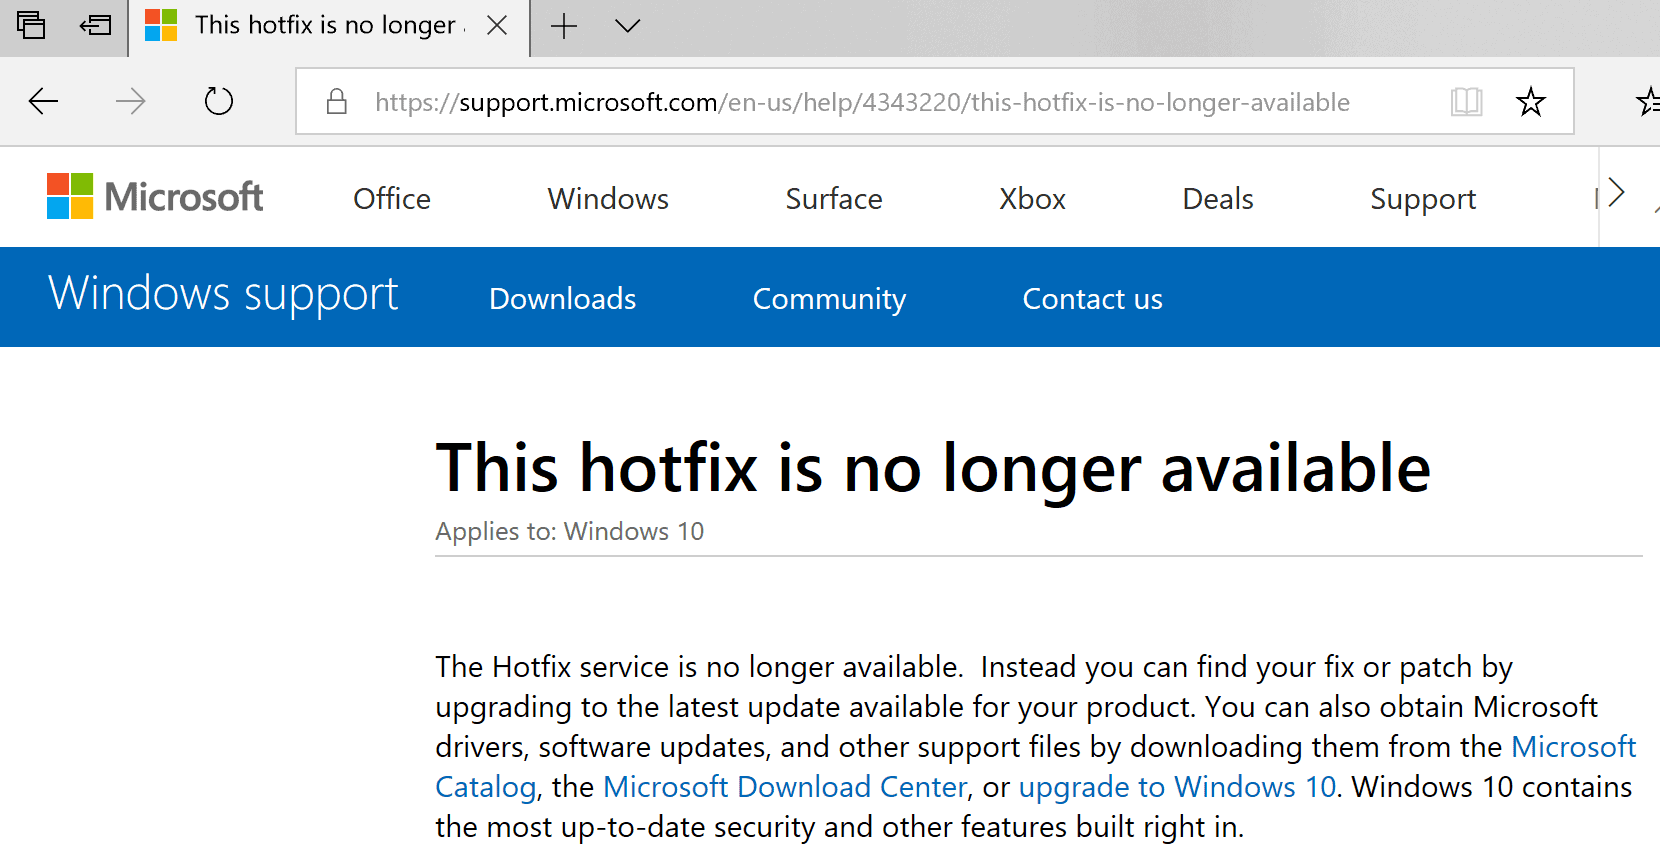 Microsoft's Hotfix service is no longer available - gHacks